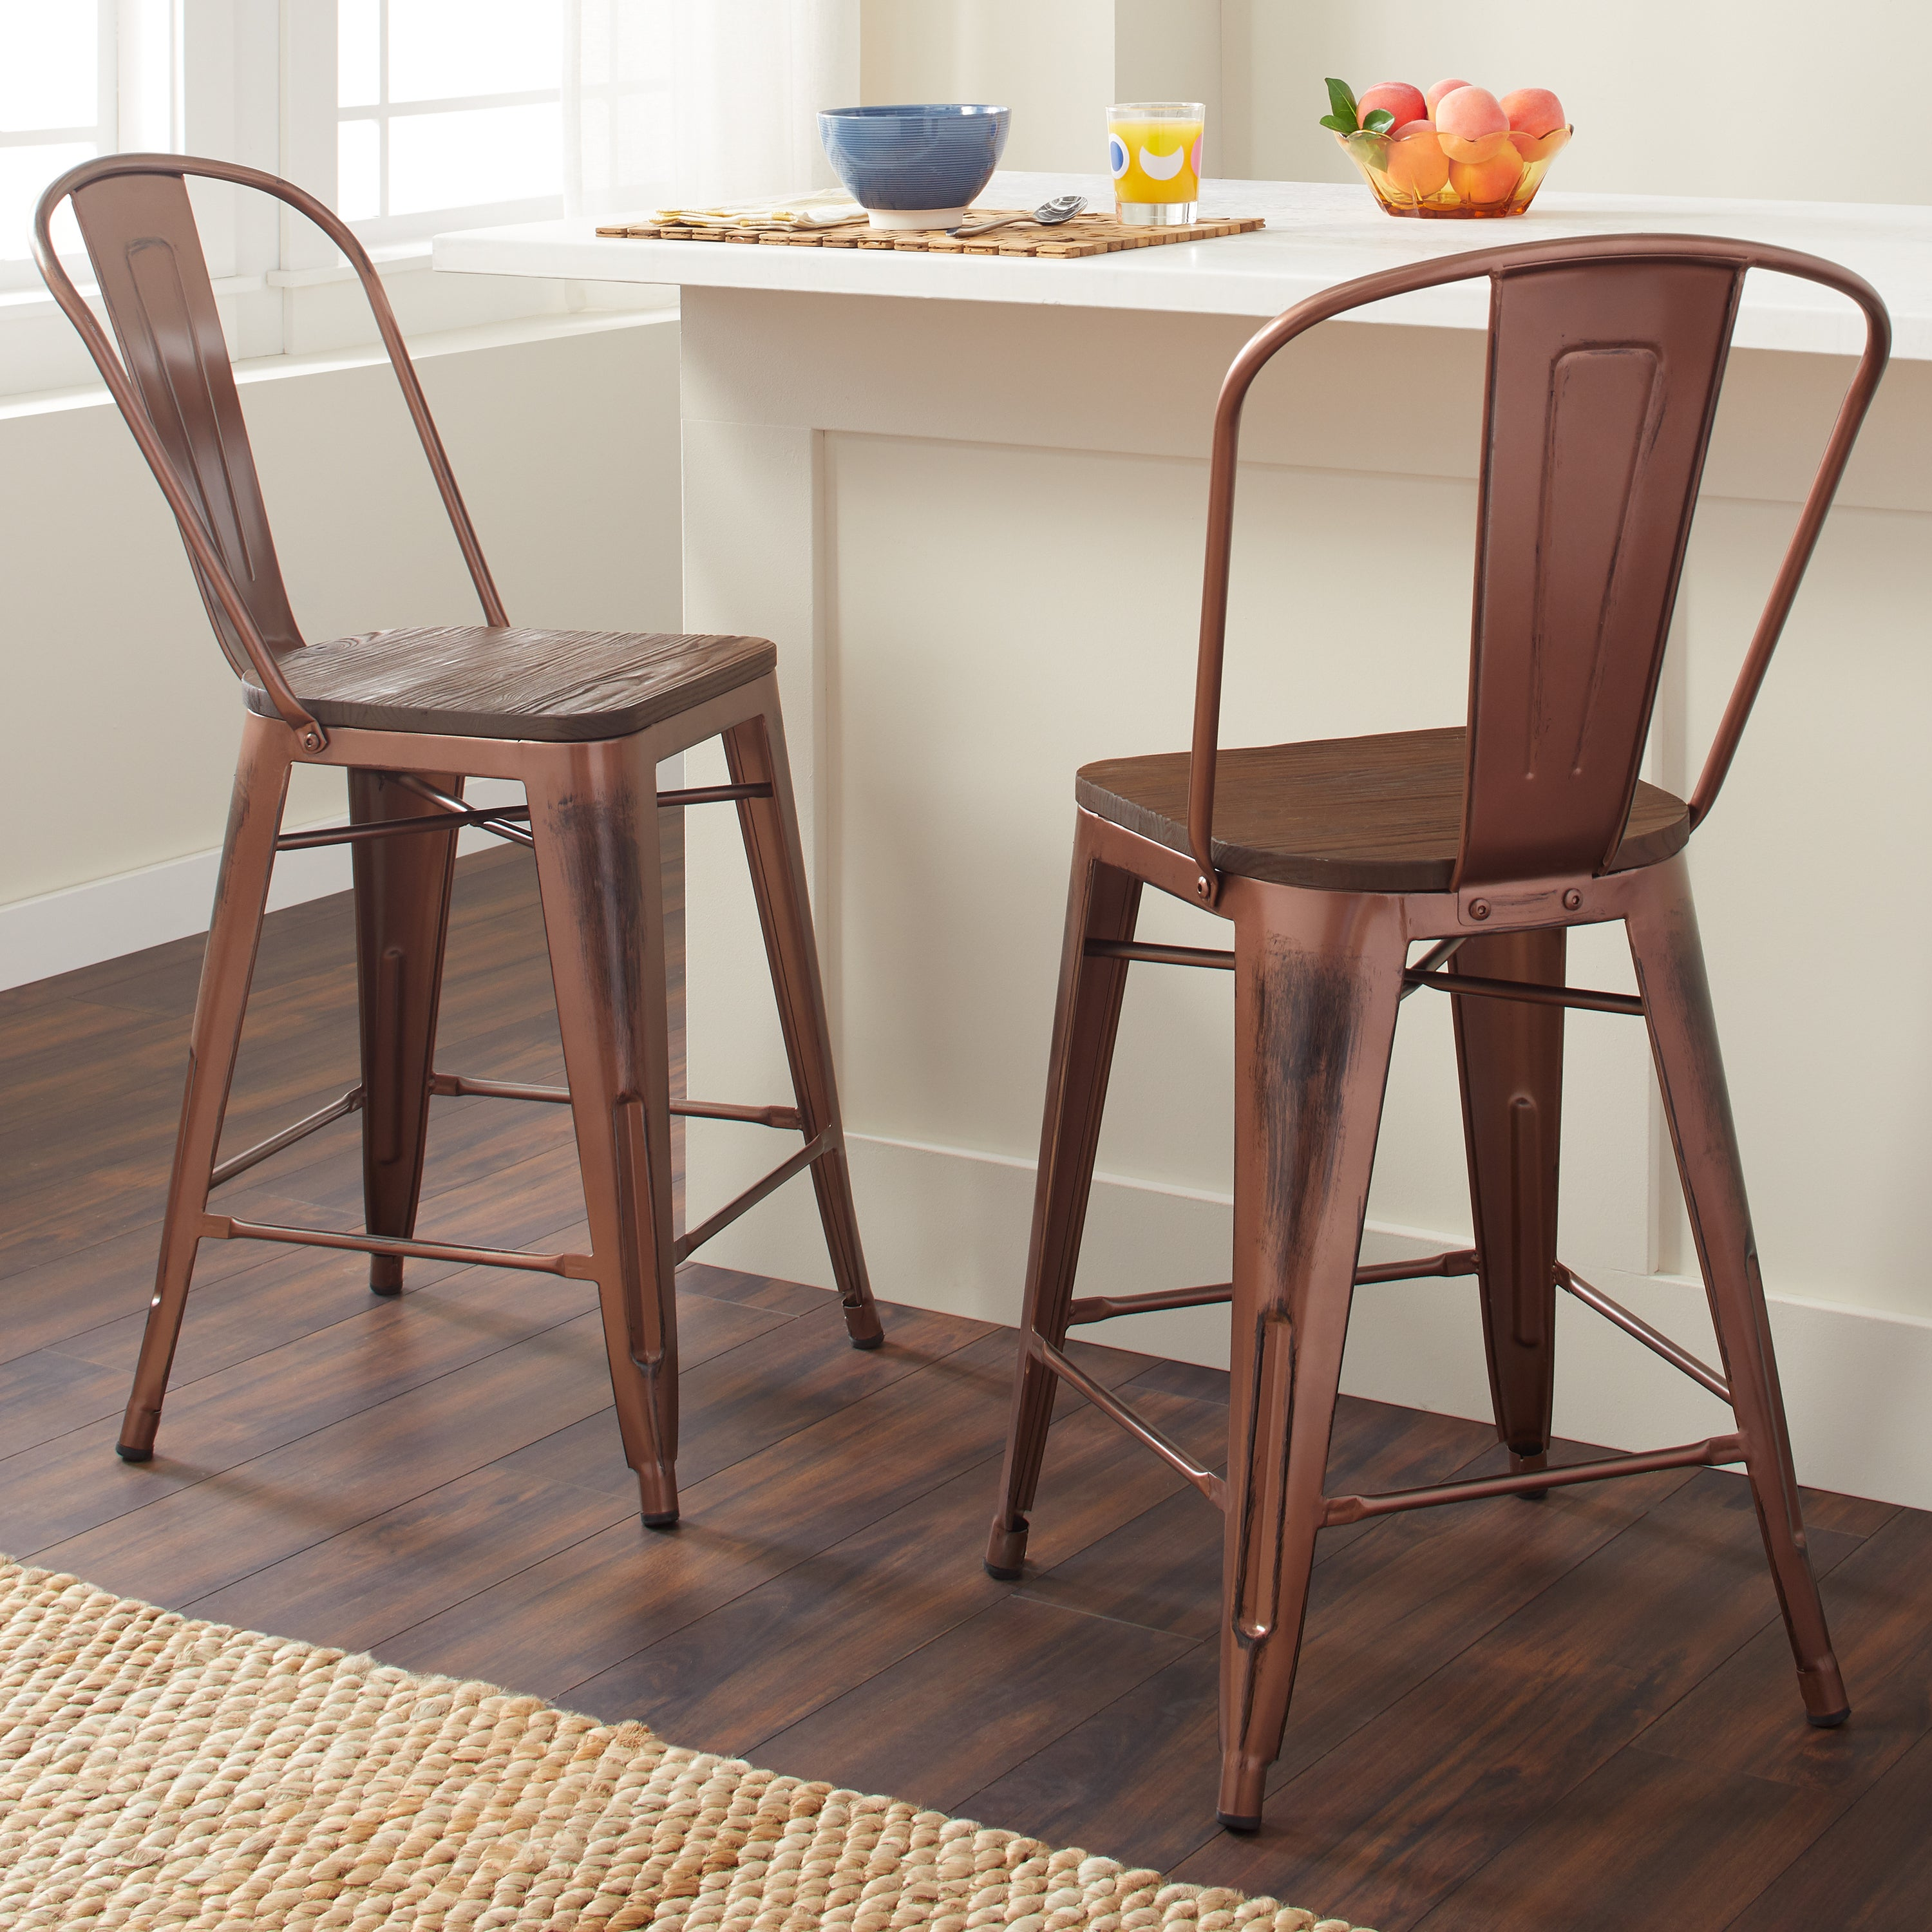 Tabouret 24 Inch Wood Seat Brushed Copper Bistro Counter Bar Stools